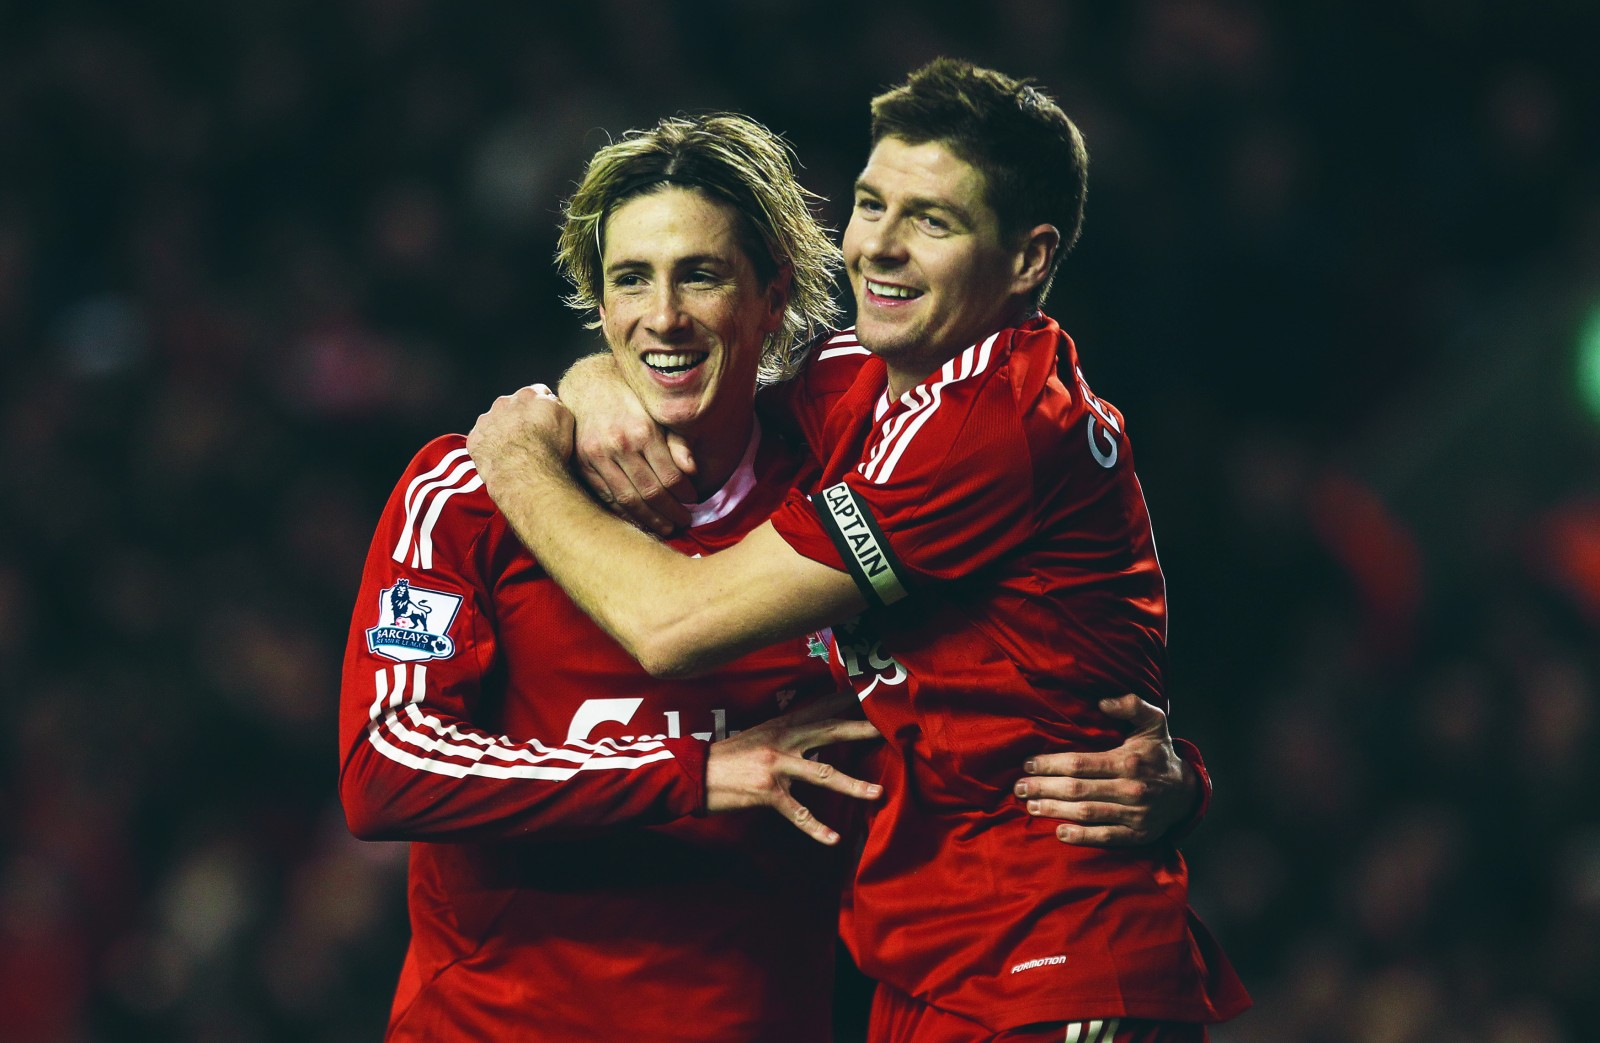 Gerrard And Torres: A World-class Partnership That